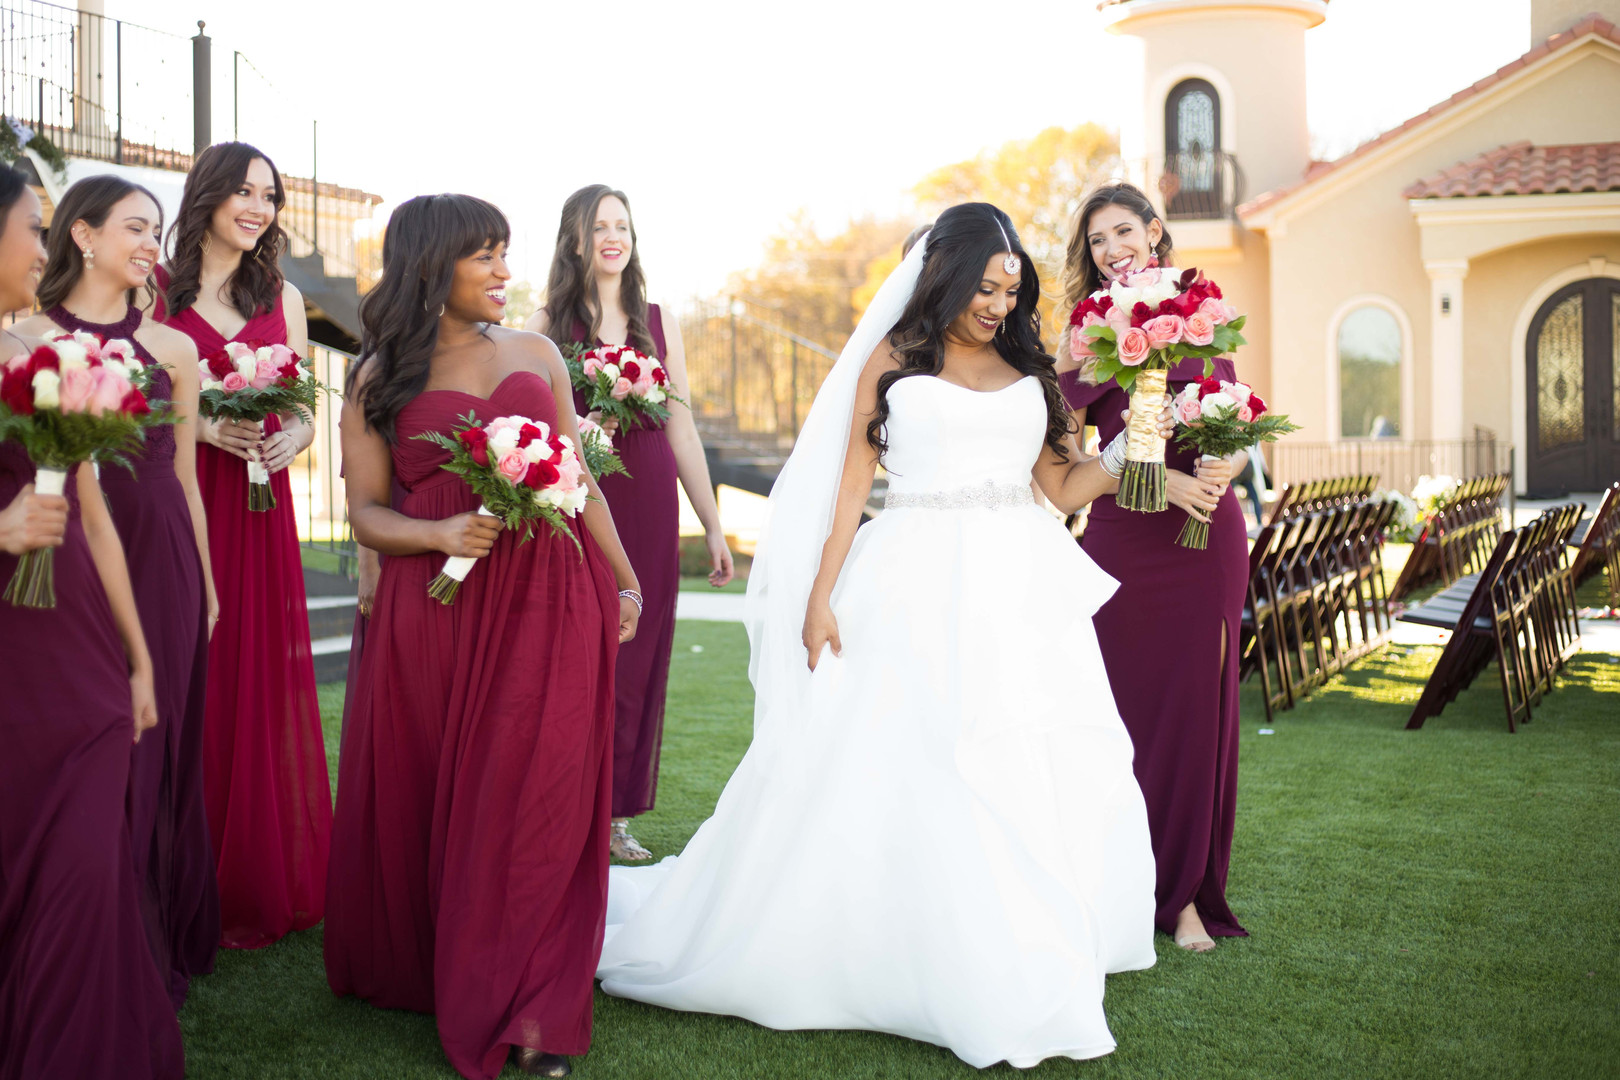 Bridal Party Event Lawn.jpg